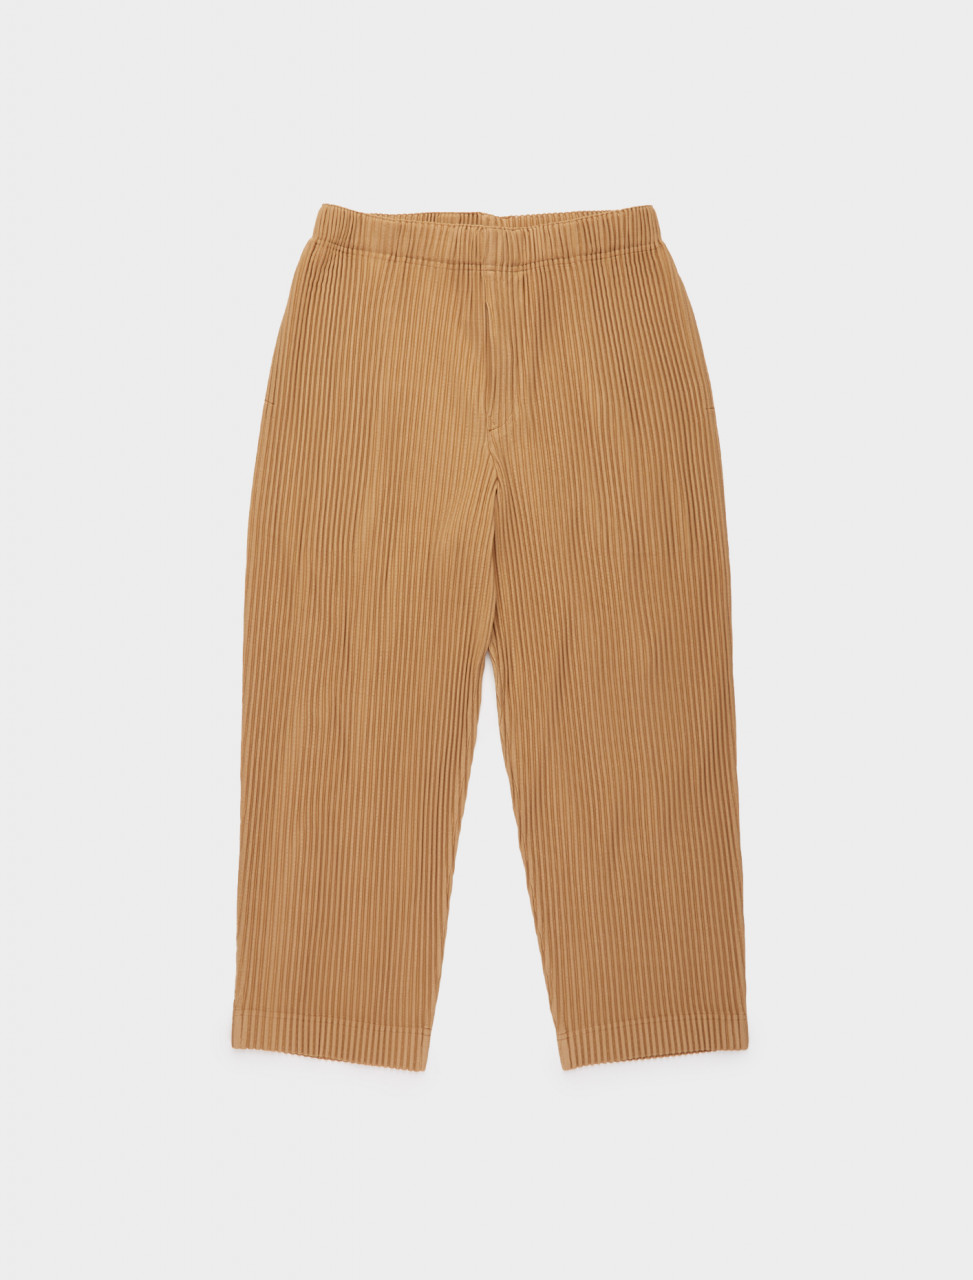 255-HP08JF131-41 ISSEY MIYAKE HOMME PLISSE PLEATED TROUSERS WALNUT BEIGE